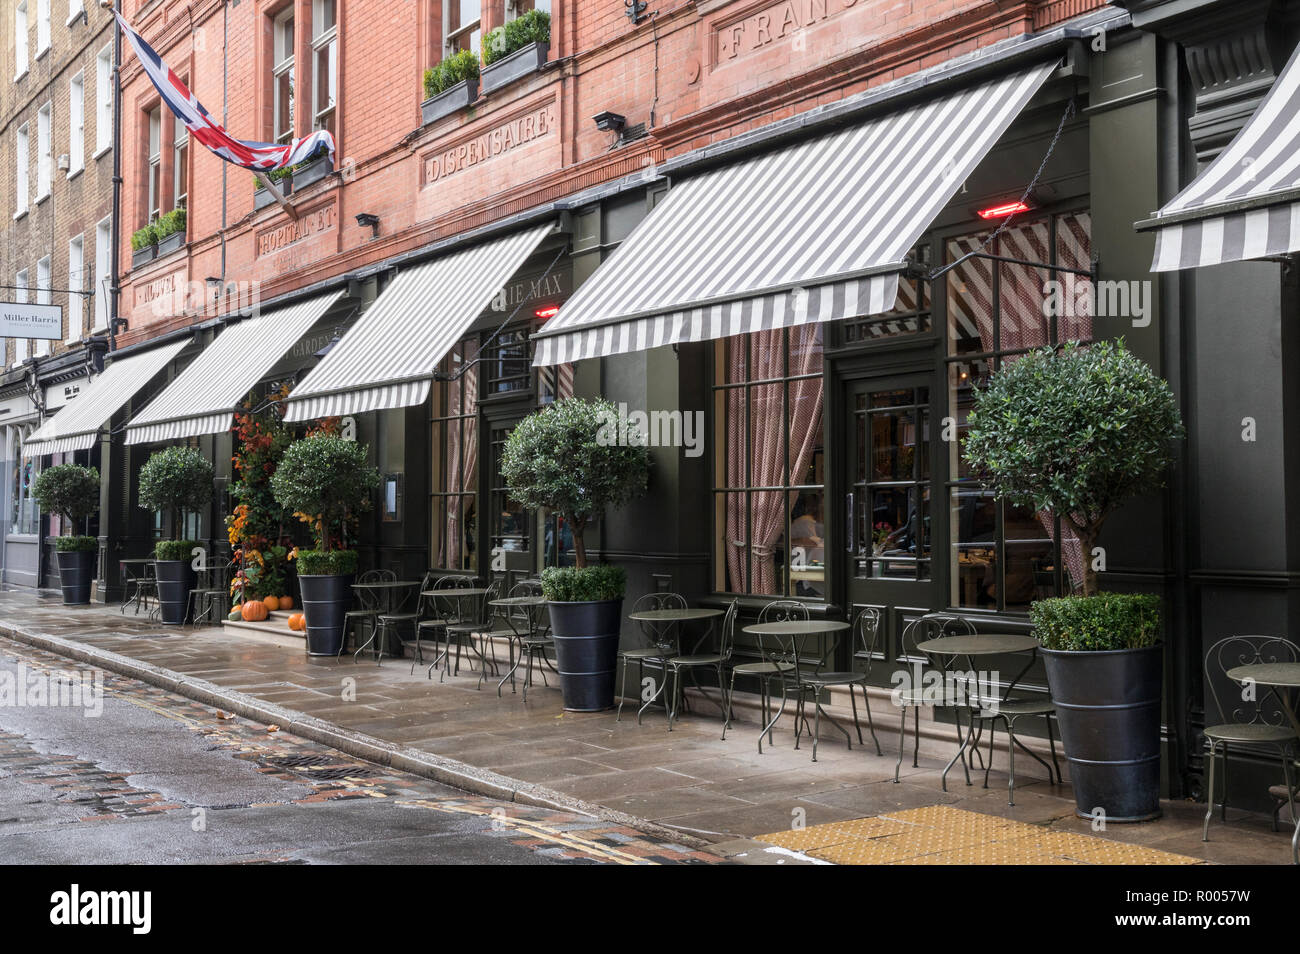 Frontage, Covent Garden Hotel, Monmouth Street, Seven Dials, London - Stock Image